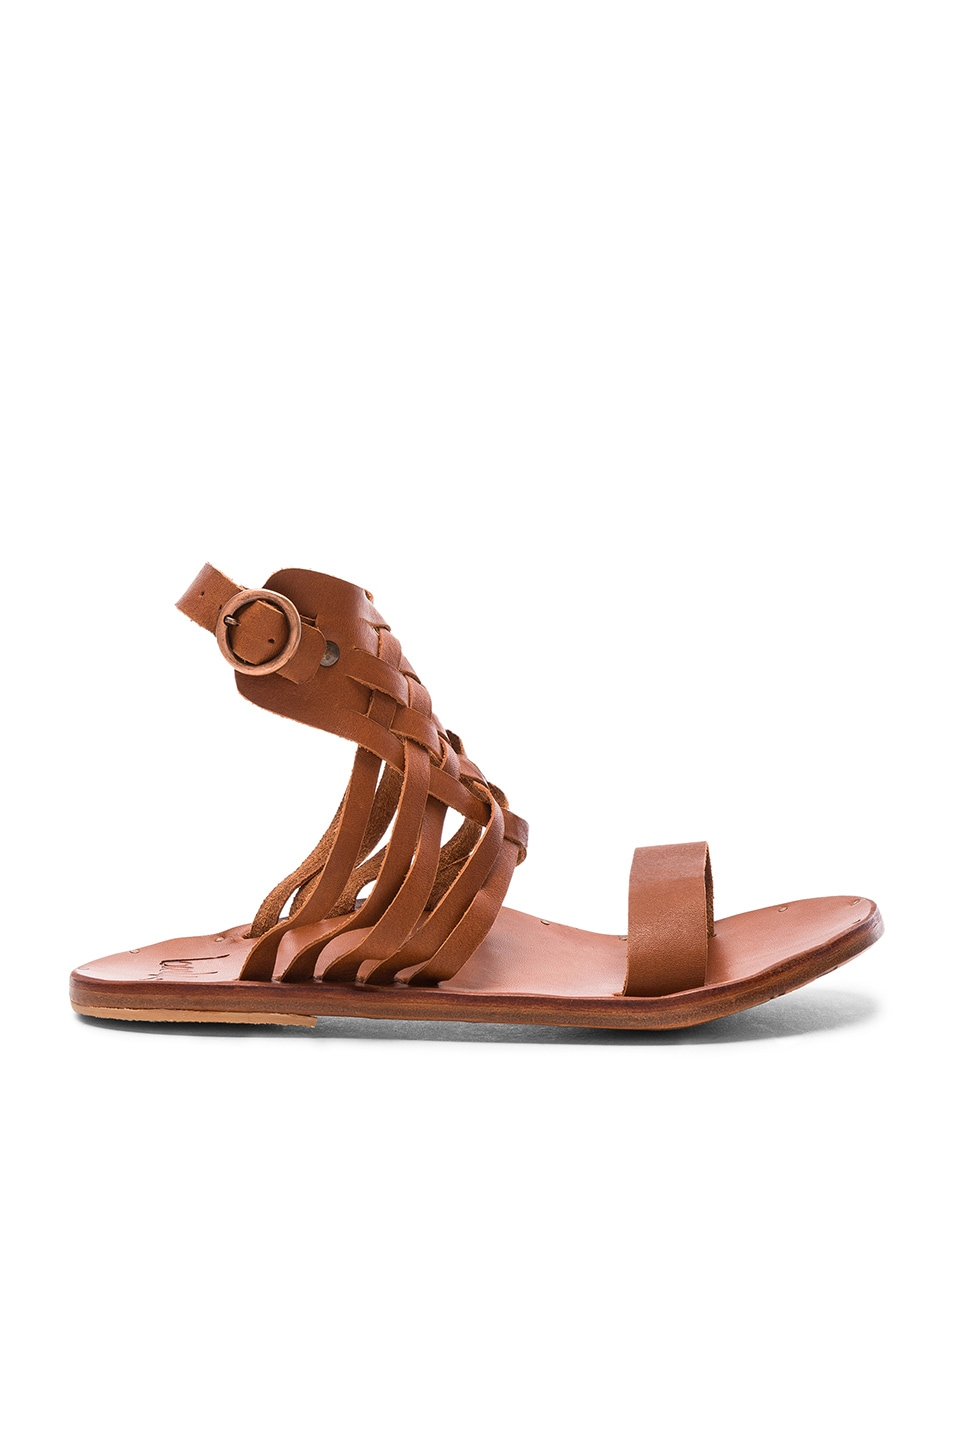 Image 1 of Beek The Raven Sandals in Tan